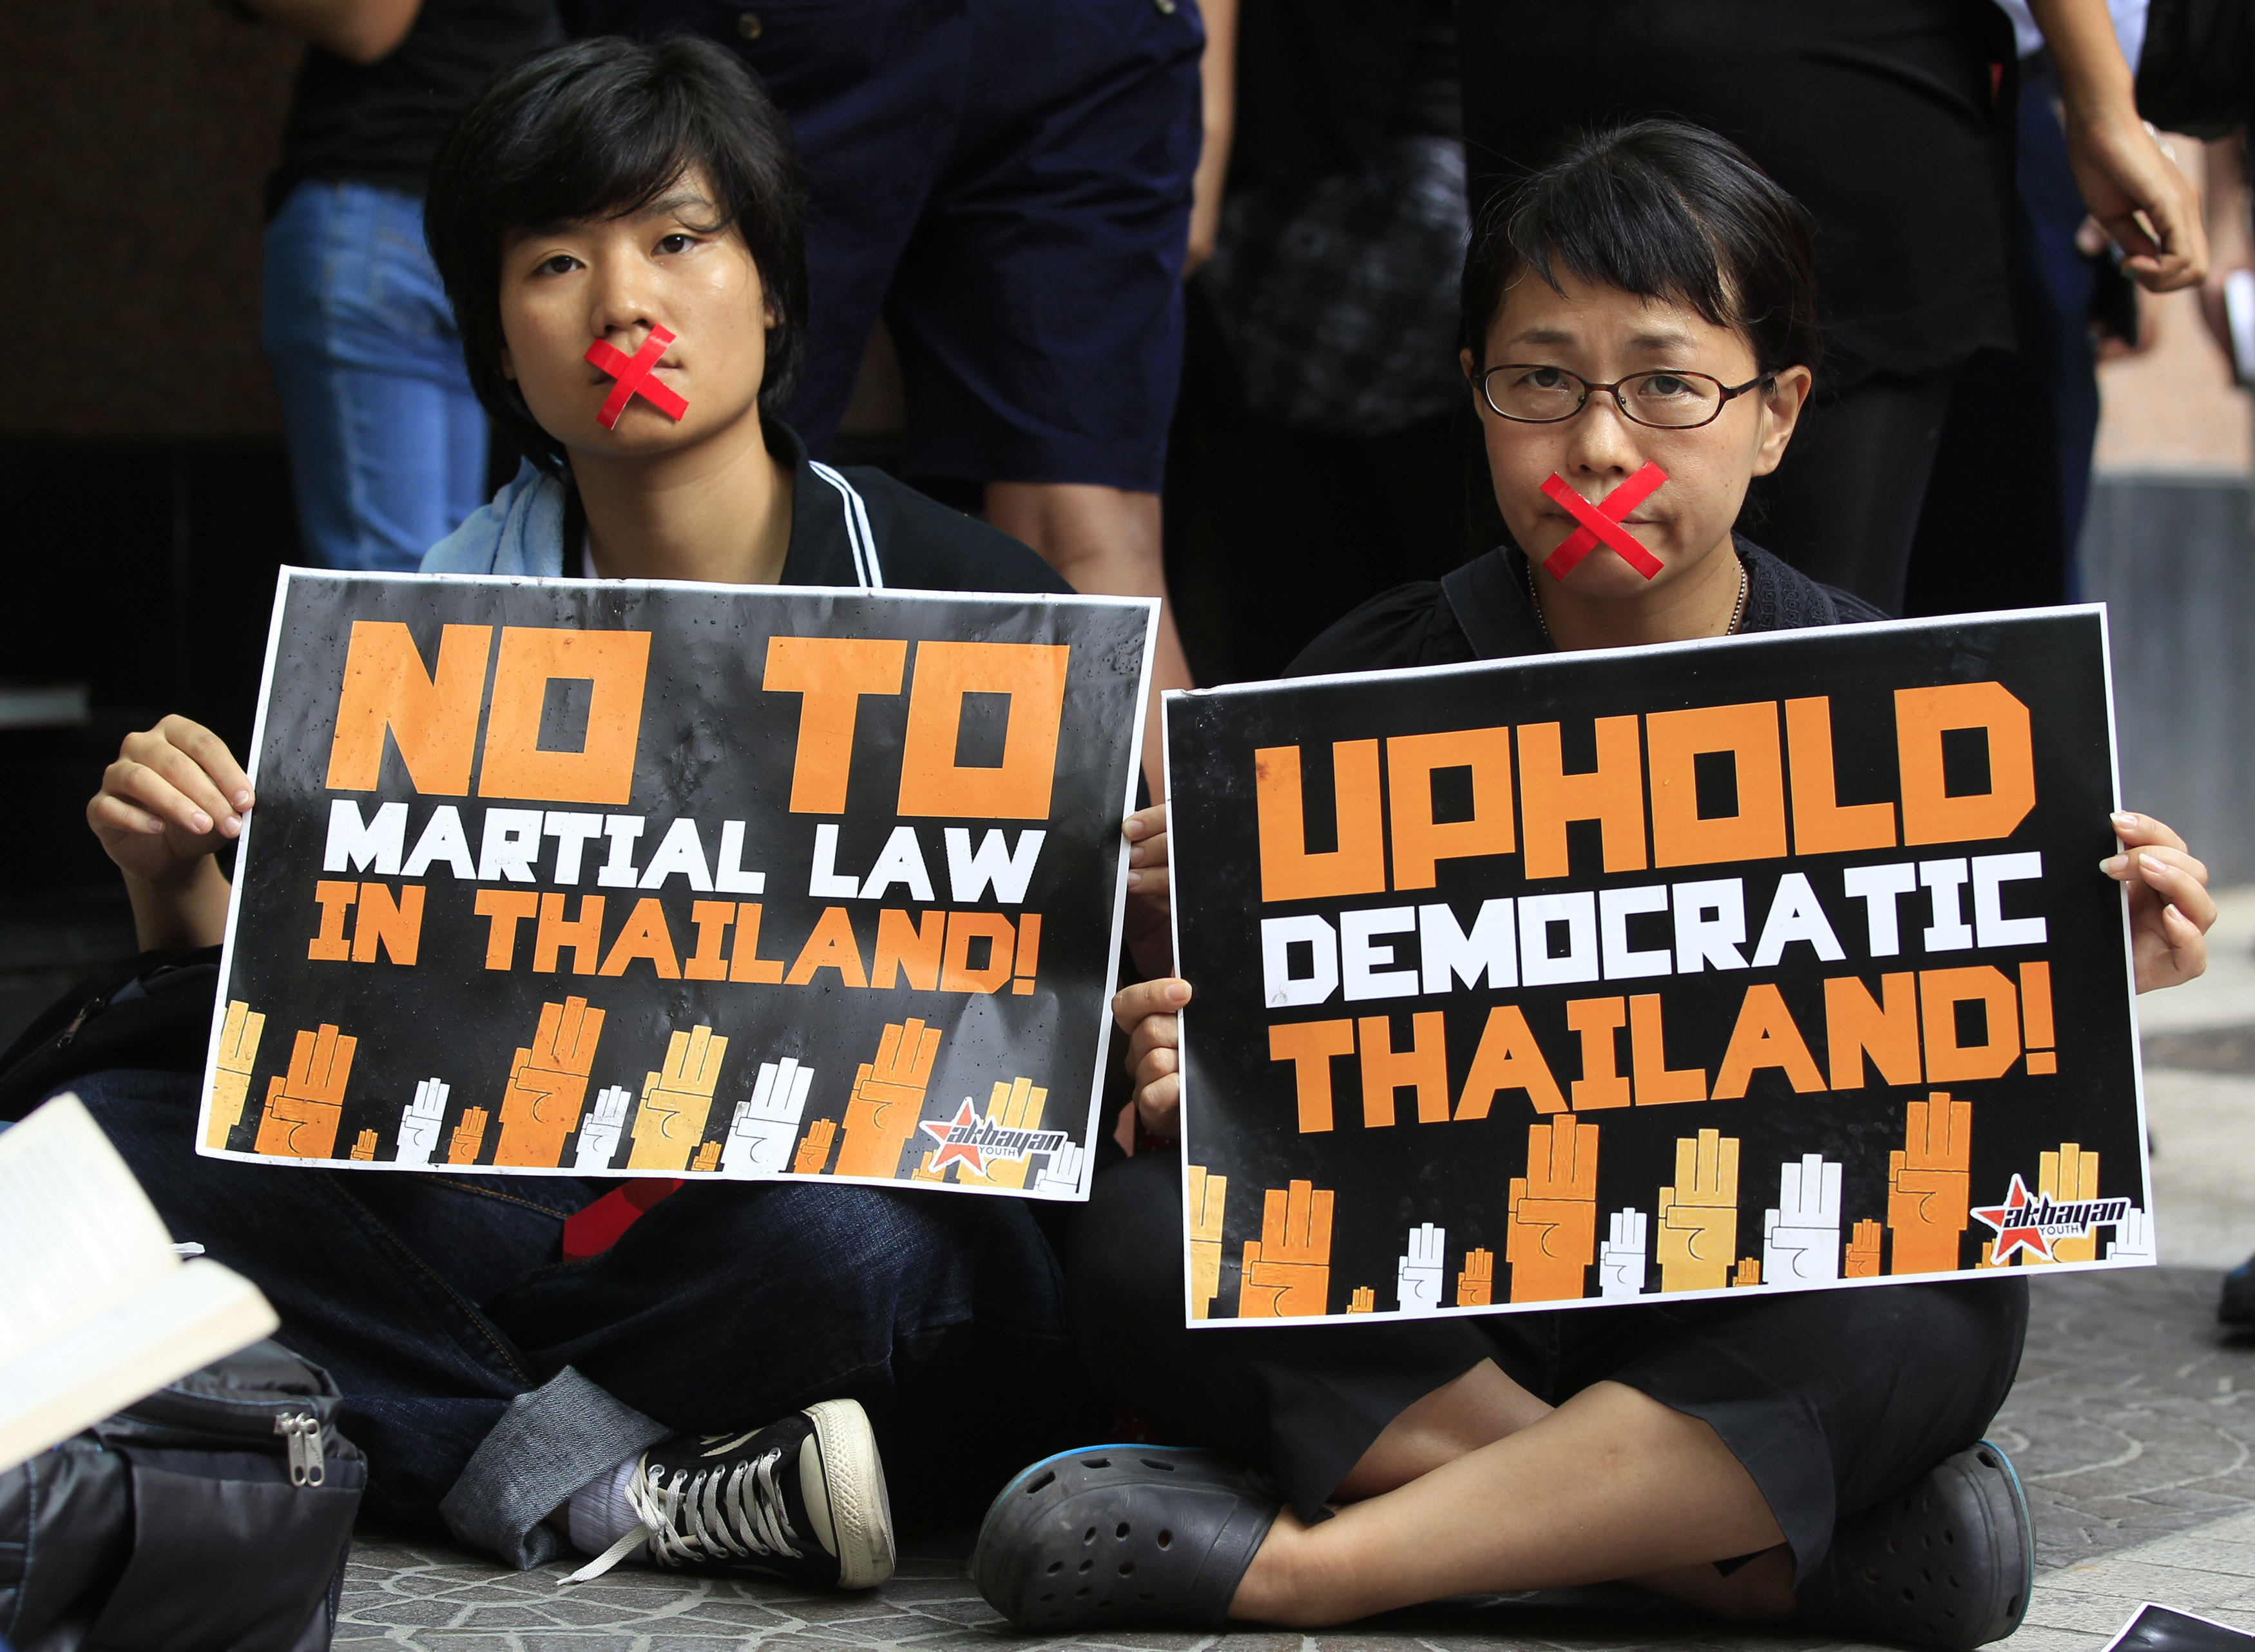 Activists, with their mouths taped up as a form of protest against the ongoing military rule in Thailand, hold placards during a picket in front of the Thai embassy in Manila  on June 5, 2014